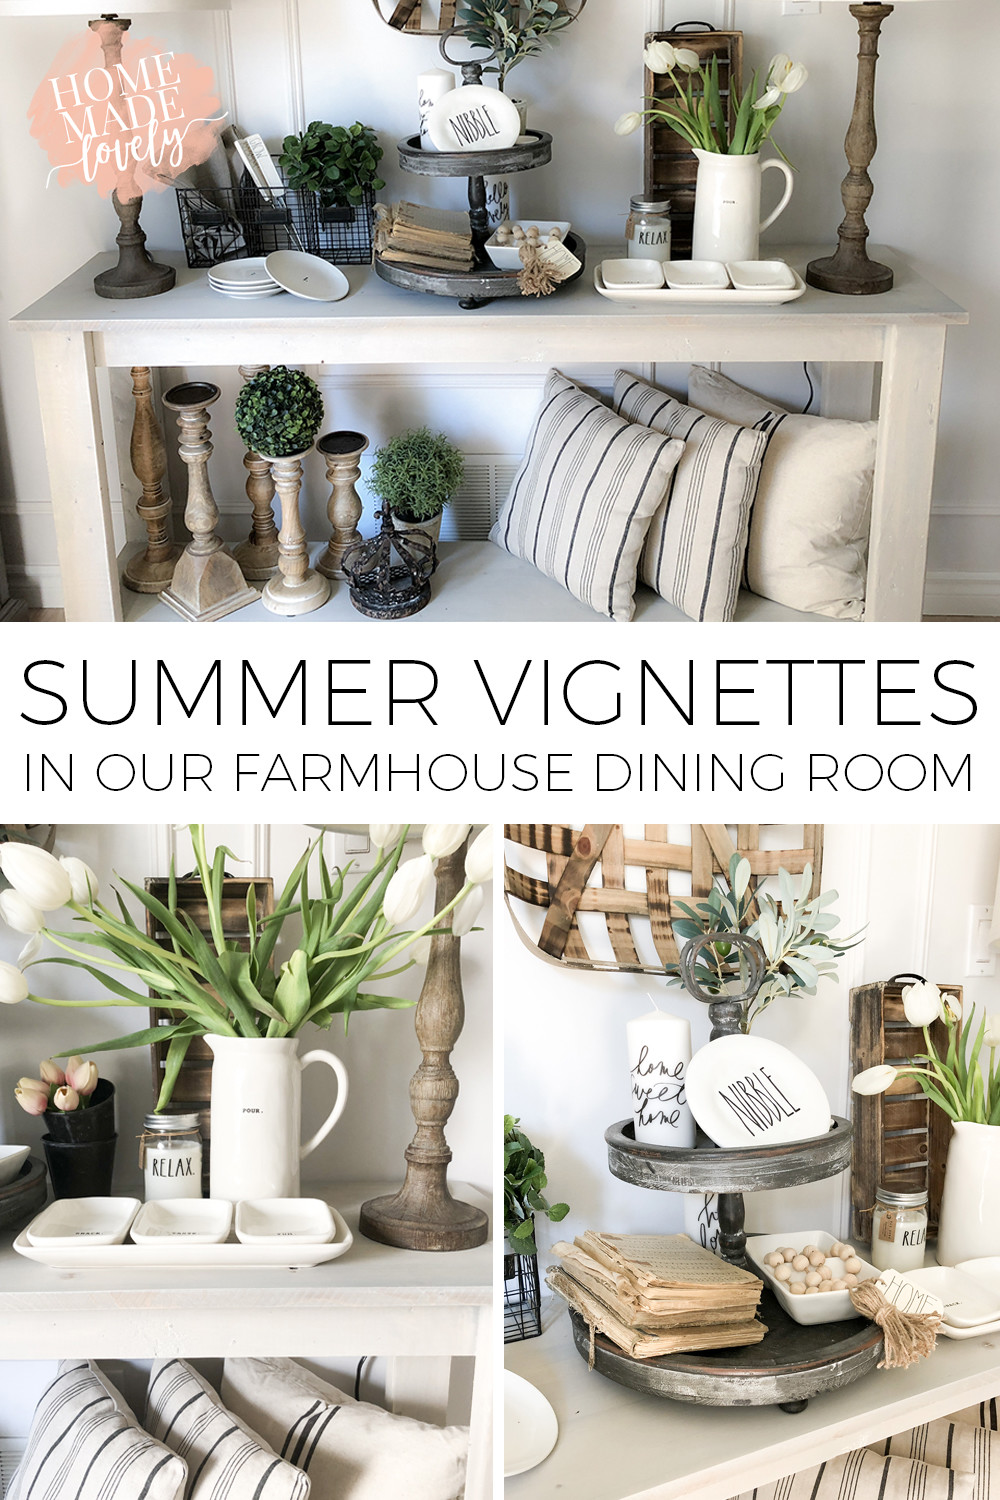 While we spend less time indoors and more time outside in the summer, it's still nice to come inside to a lovely decorated space. Here is one larger vignette broken down into a few summer vignettes in our farmhouse dining room.